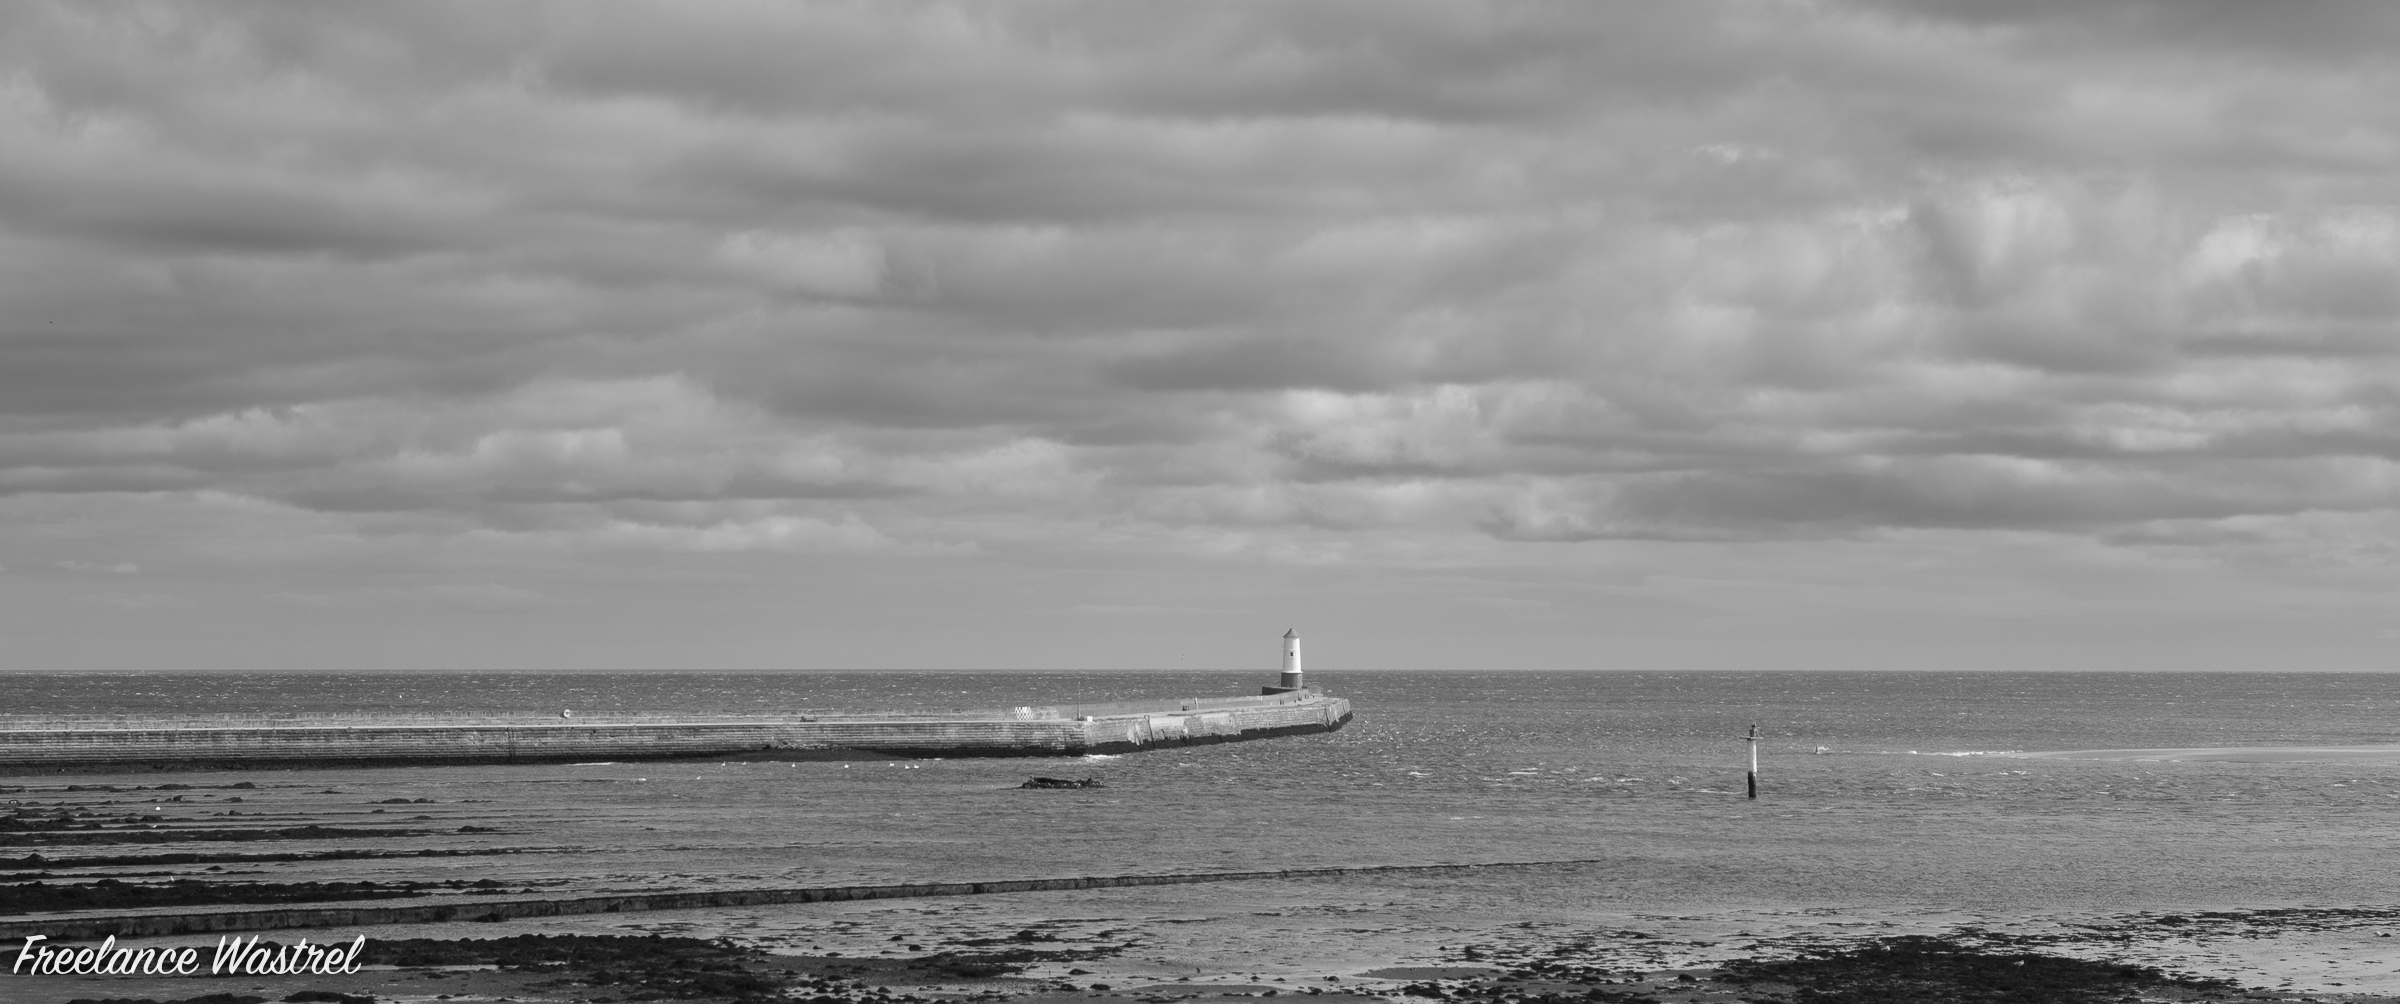 Berwick Breakwater Lighthouse, August 2019